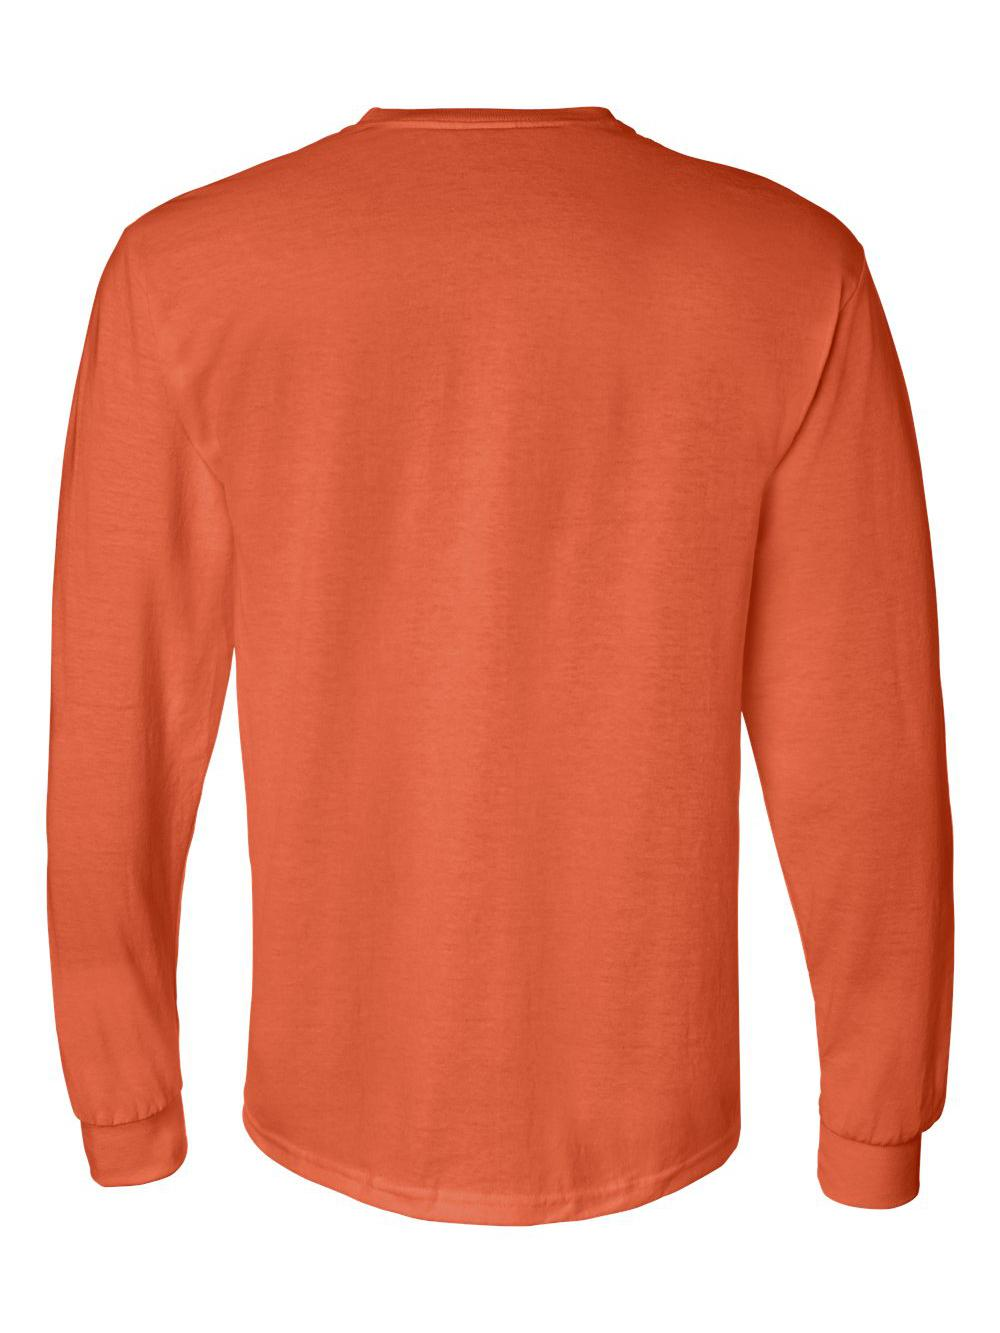 Gildan-DryBlend-50-50-Long-Sleeve-T-Shirt-8400 thumbnail 28